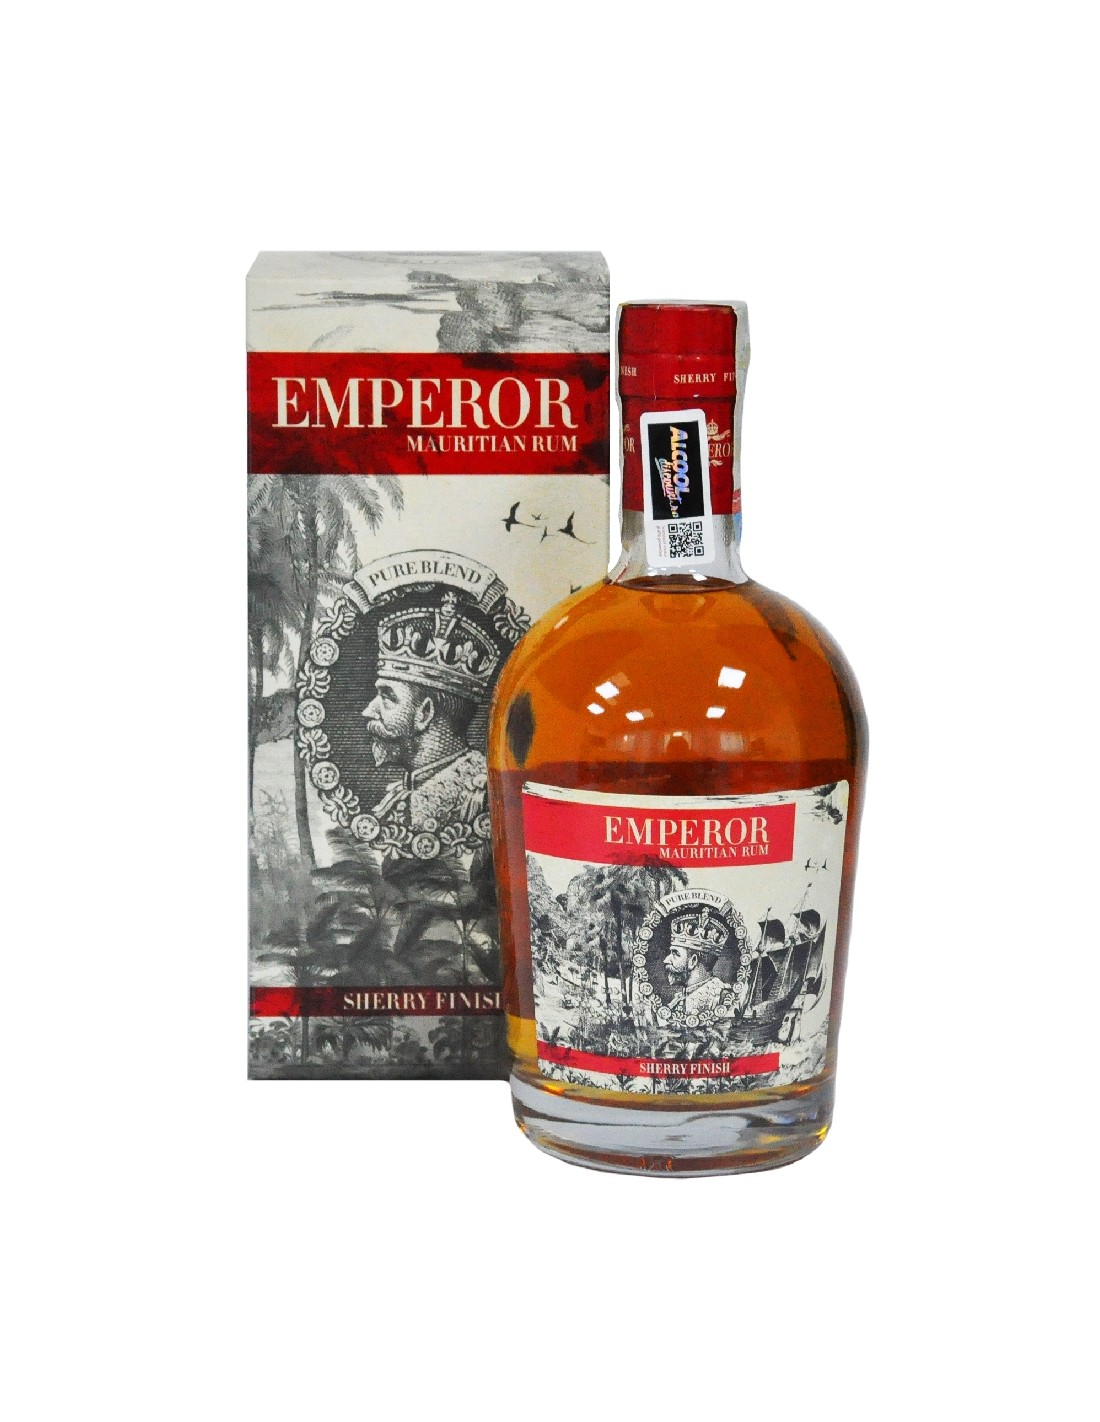 Rom Emperor Mauritian Sherry + GB, 40%, 0.7L